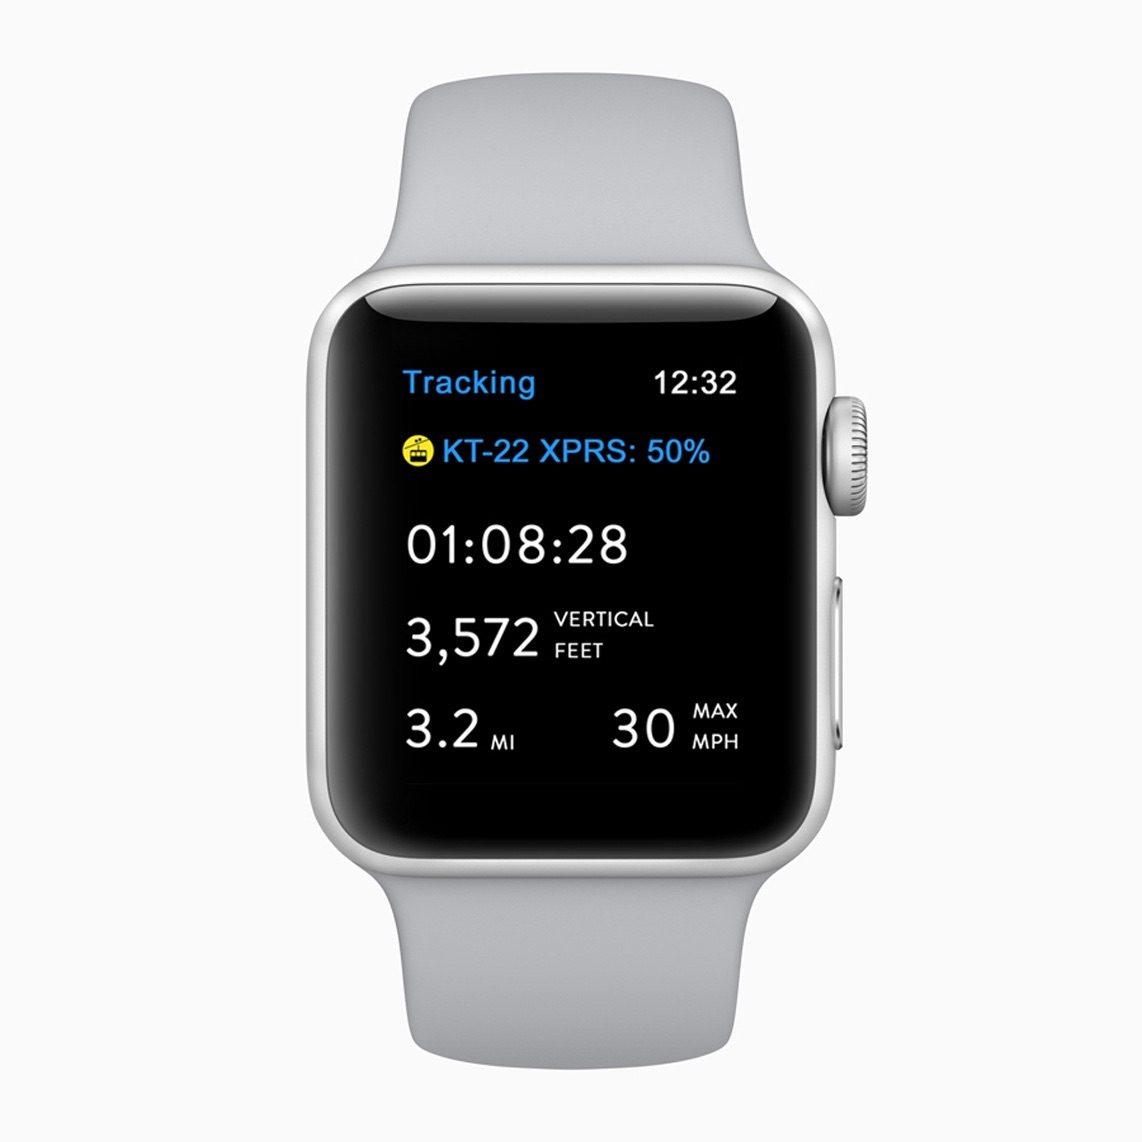 cropped-Apple_Watch_Series_3_tracking_20282018.jpg